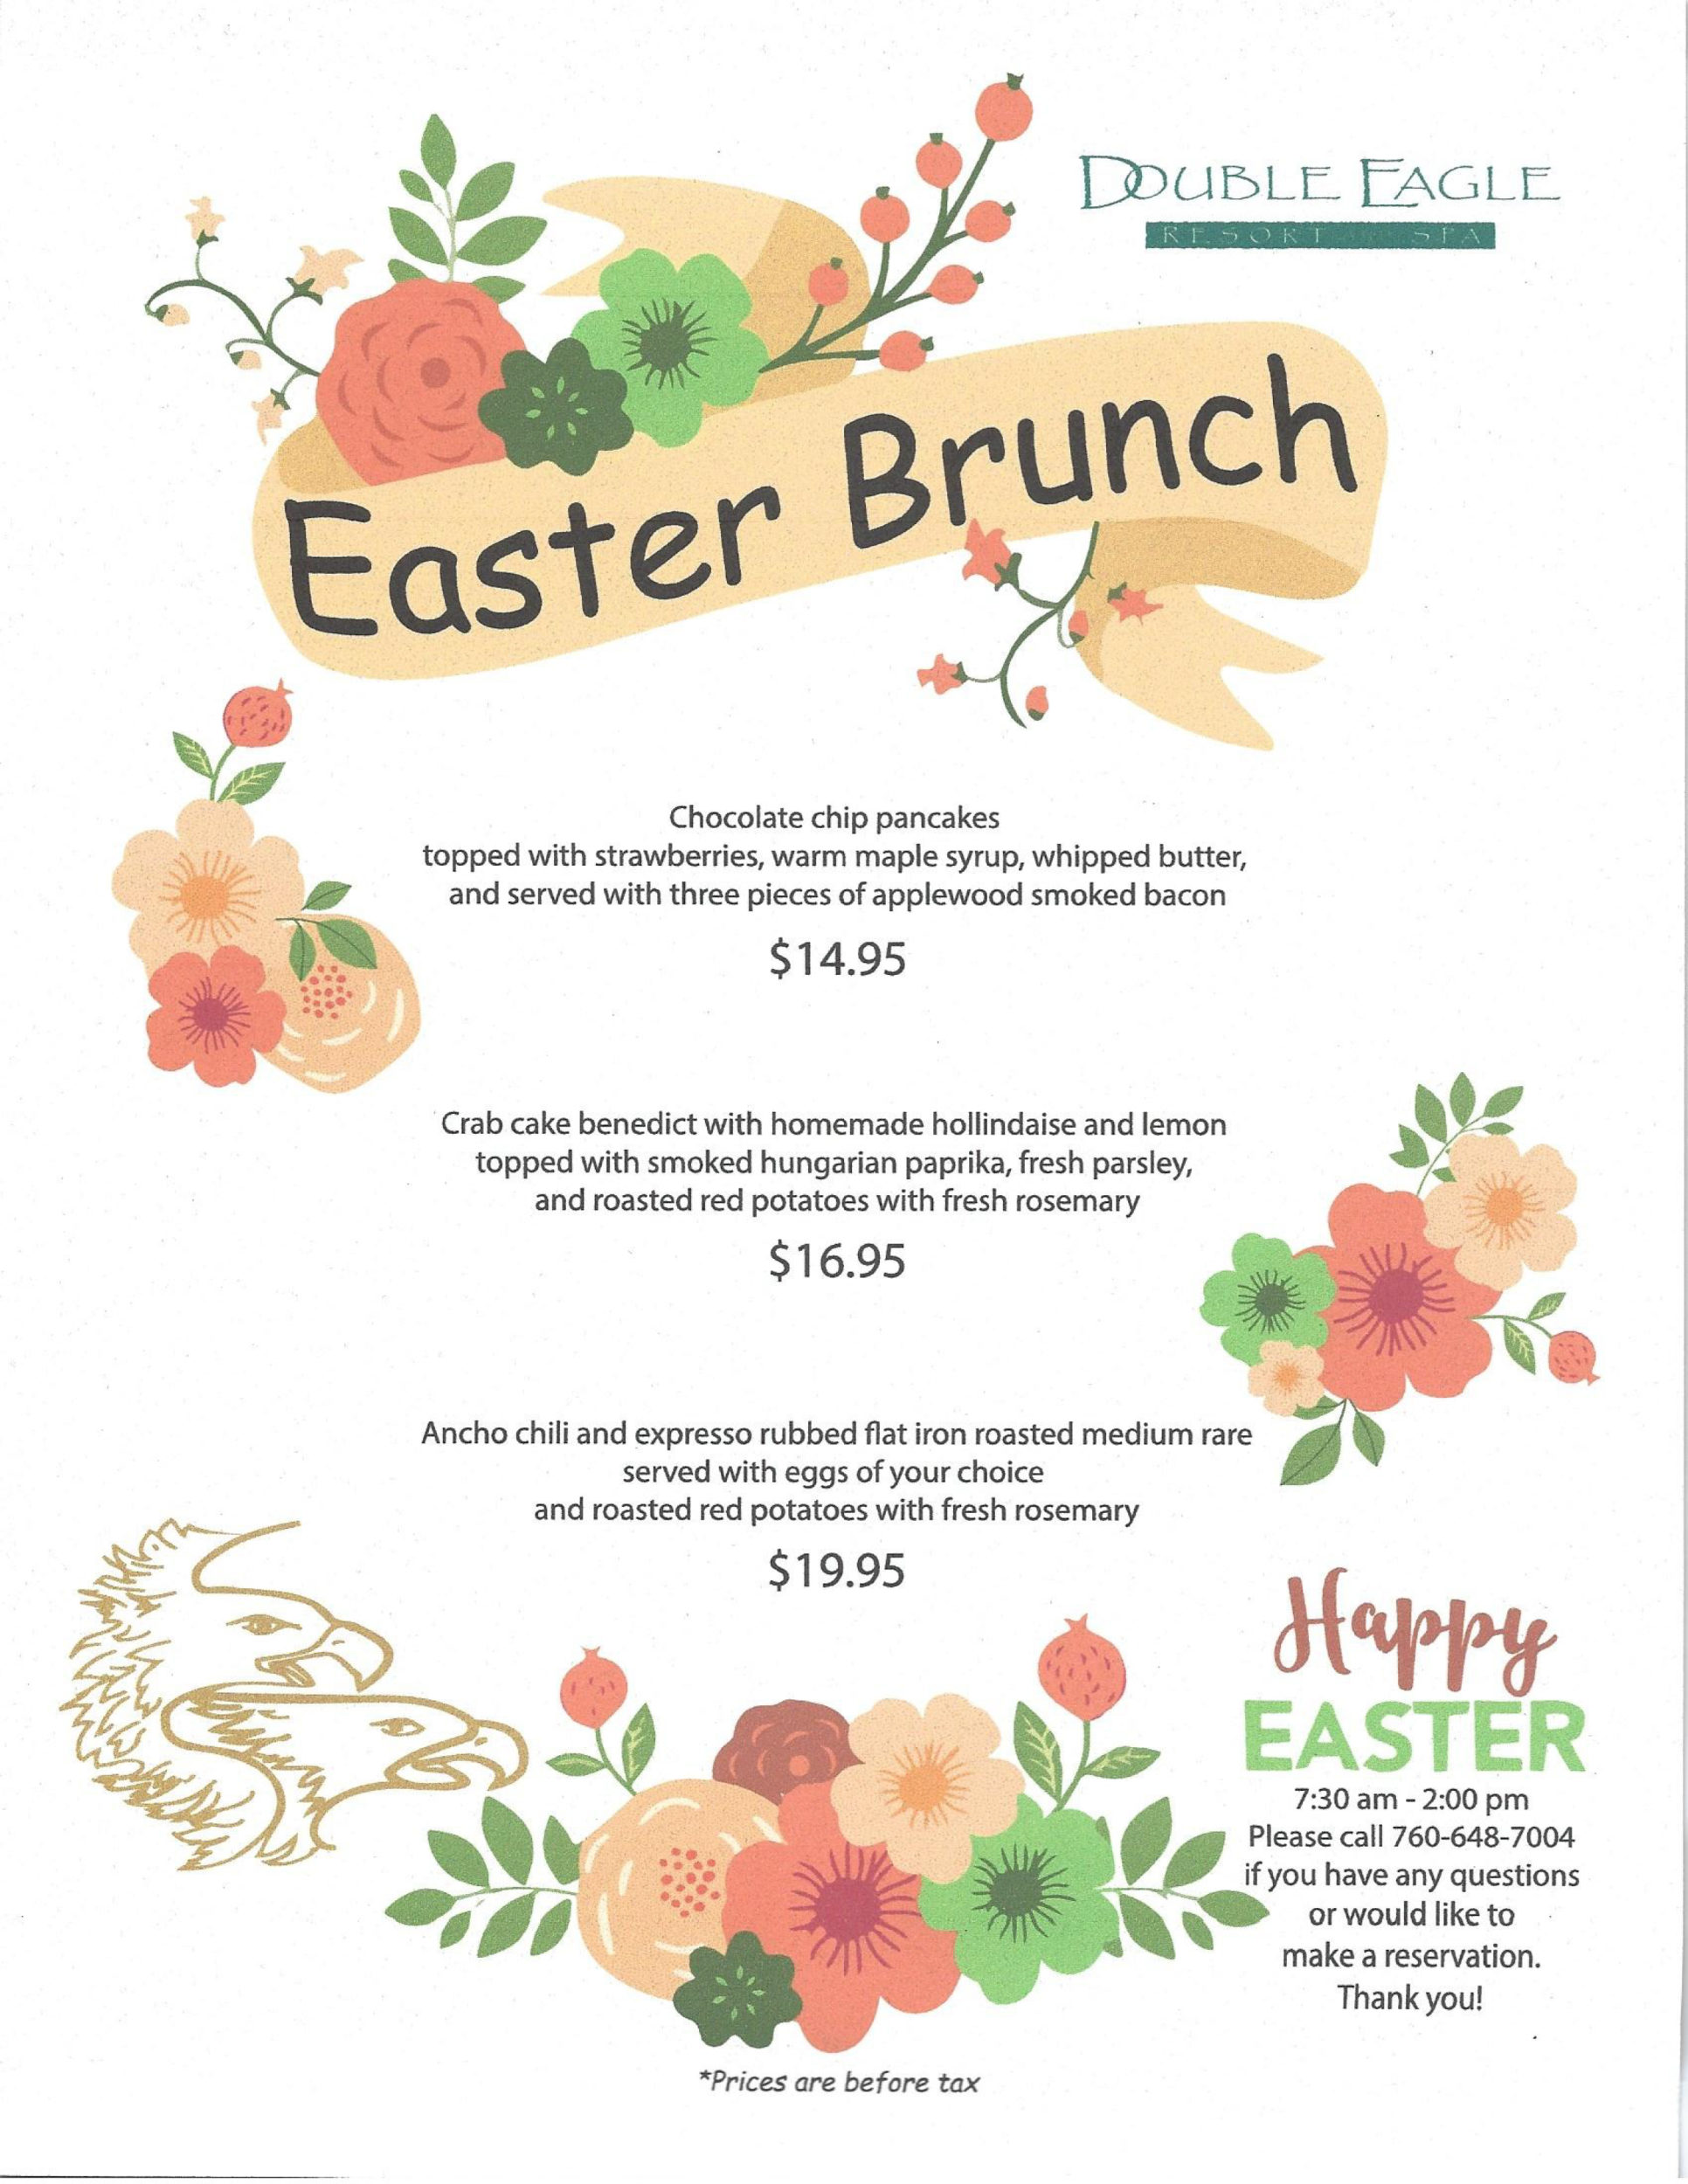 Special menus double eagle resort and spa for Easter brunch restaurant menus